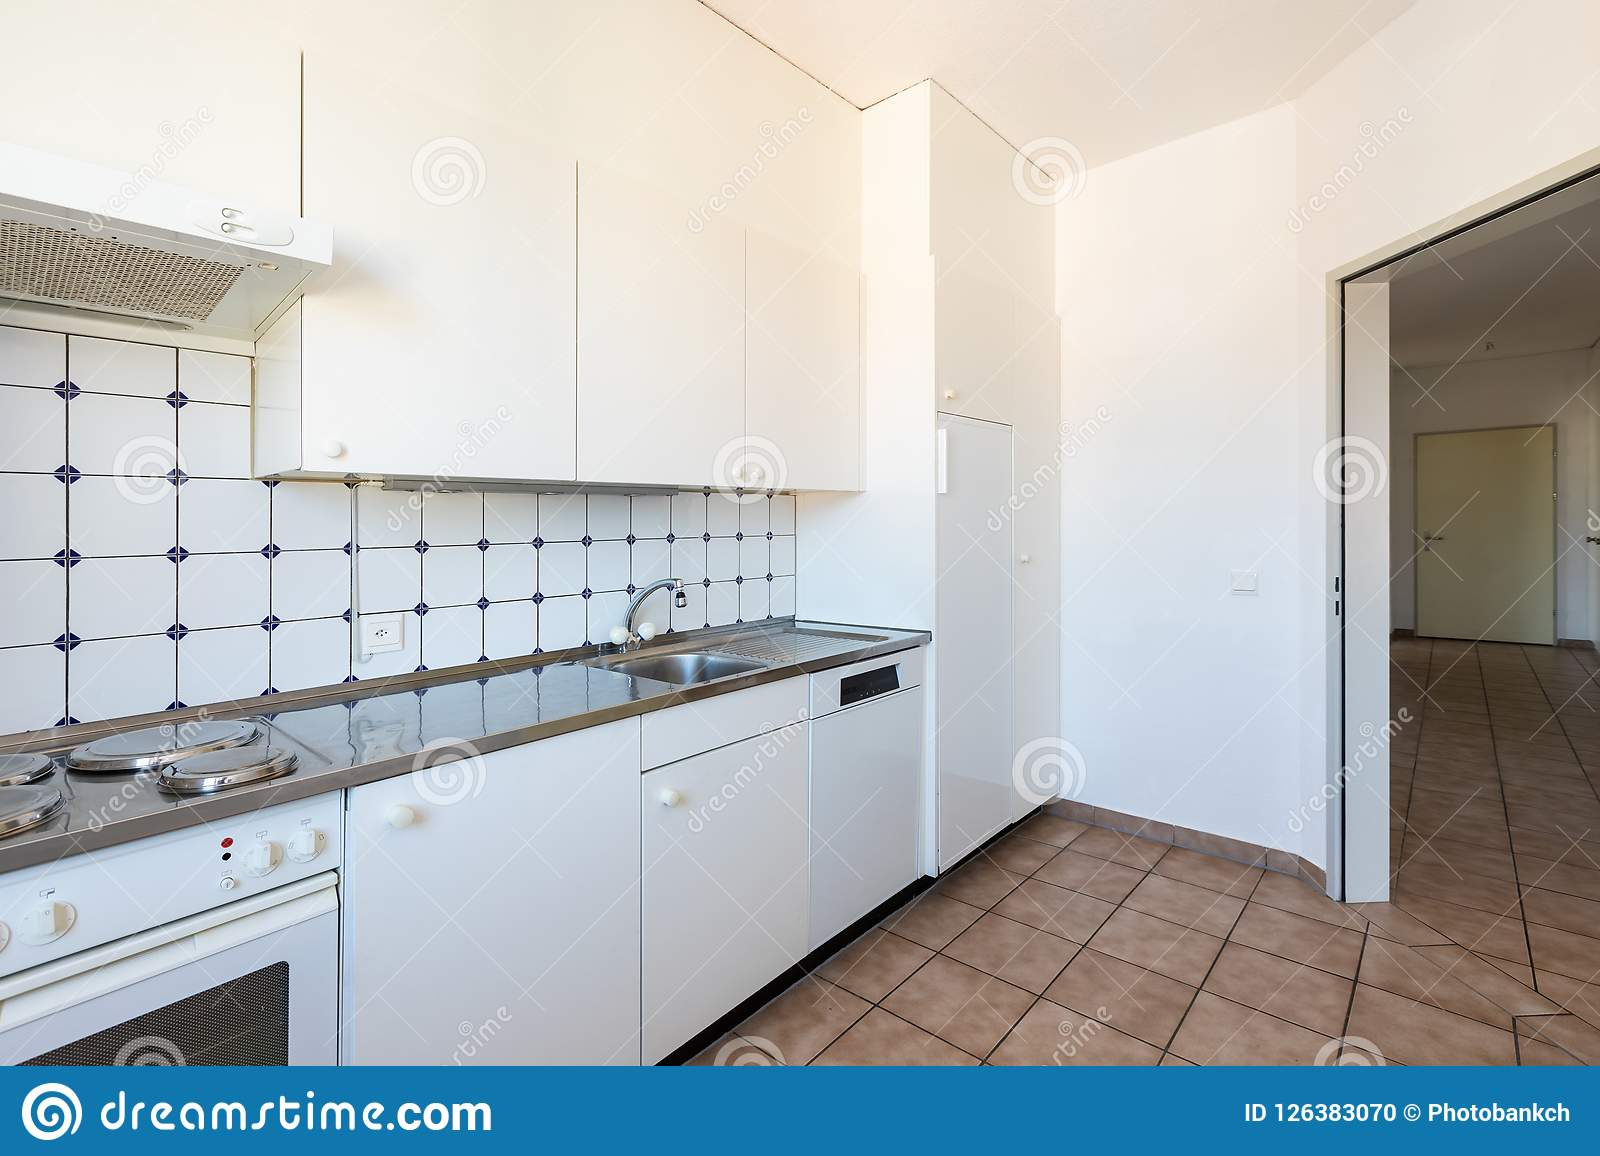 Kitchen With White And Tile, Vintage Furniture Stock Photo - Image ...